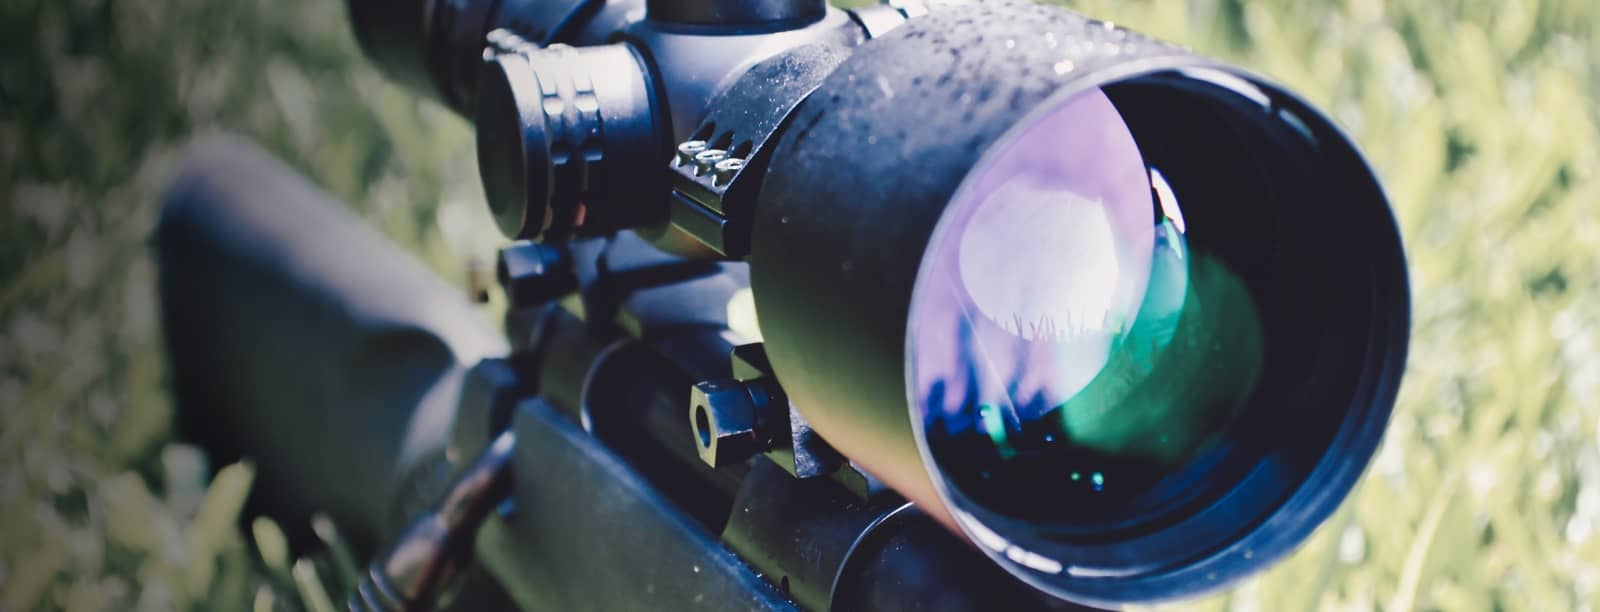 Optics for all your adventures - Osprey Global